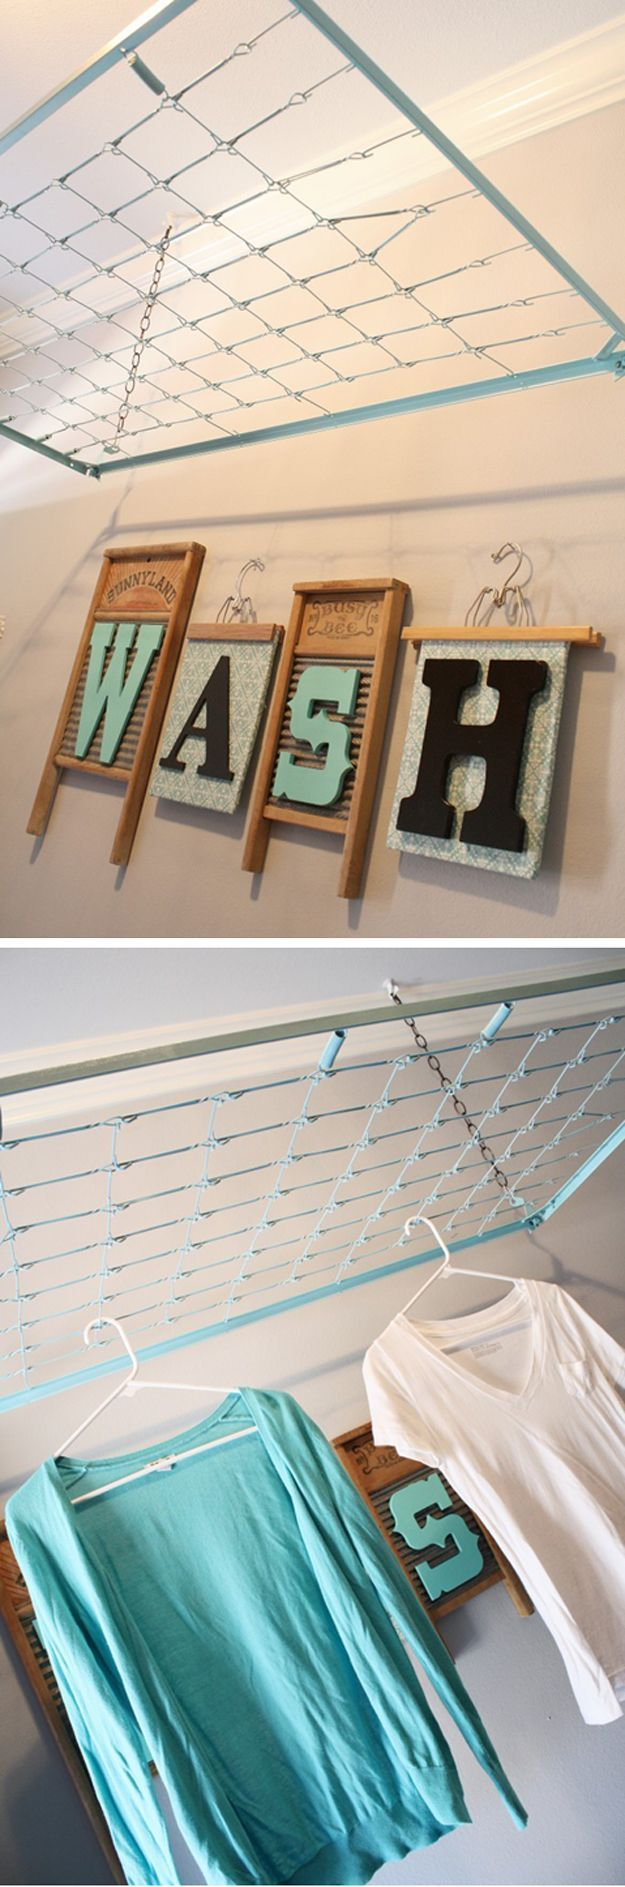 Awesome Laundry Room Drying Rack Hacks